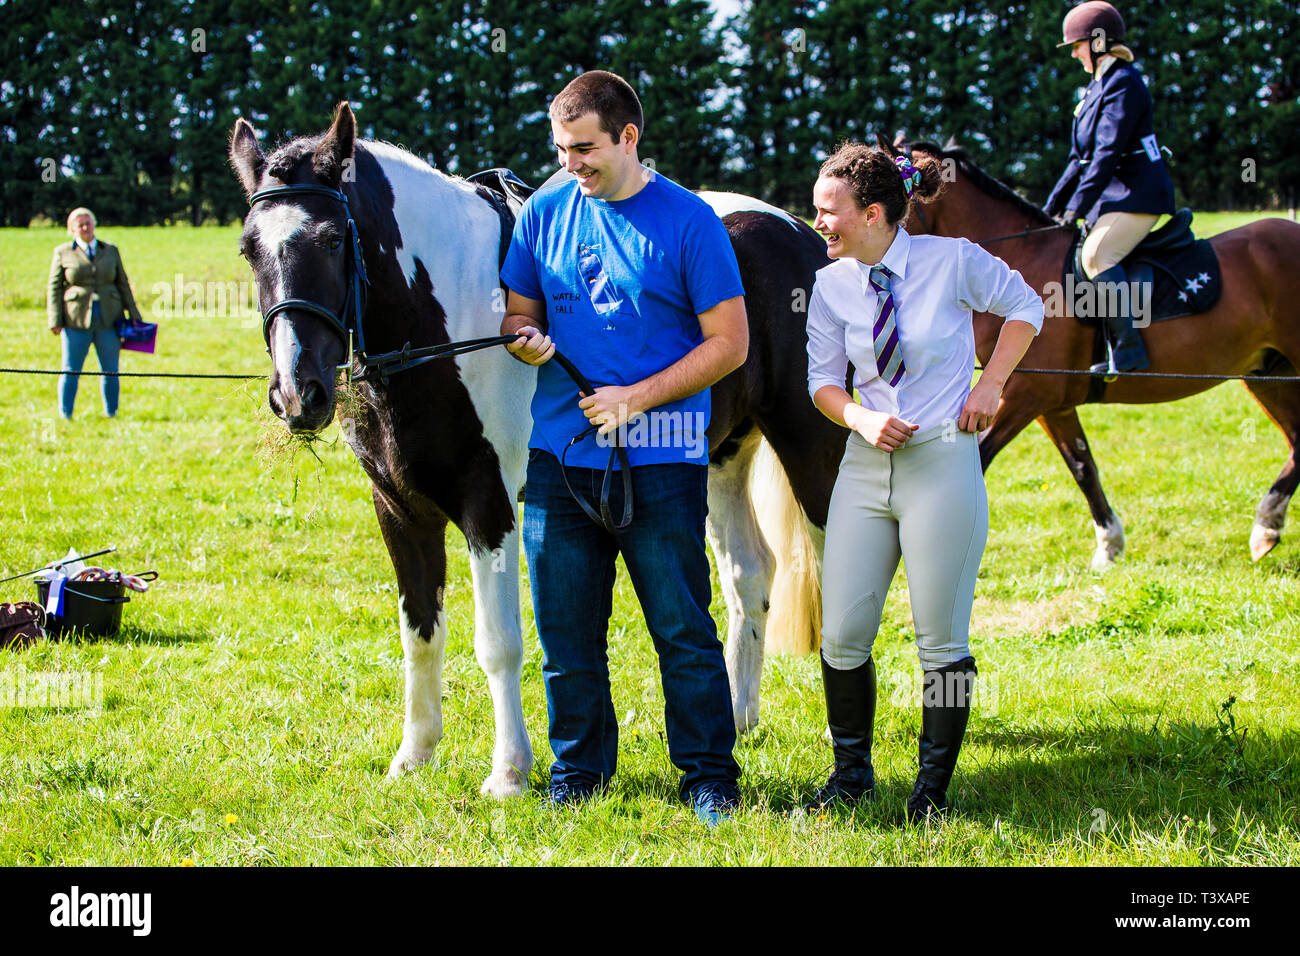 Male and female with horse at a horse show. Man holds the horse while the woman prepares to ride. Stock Photo